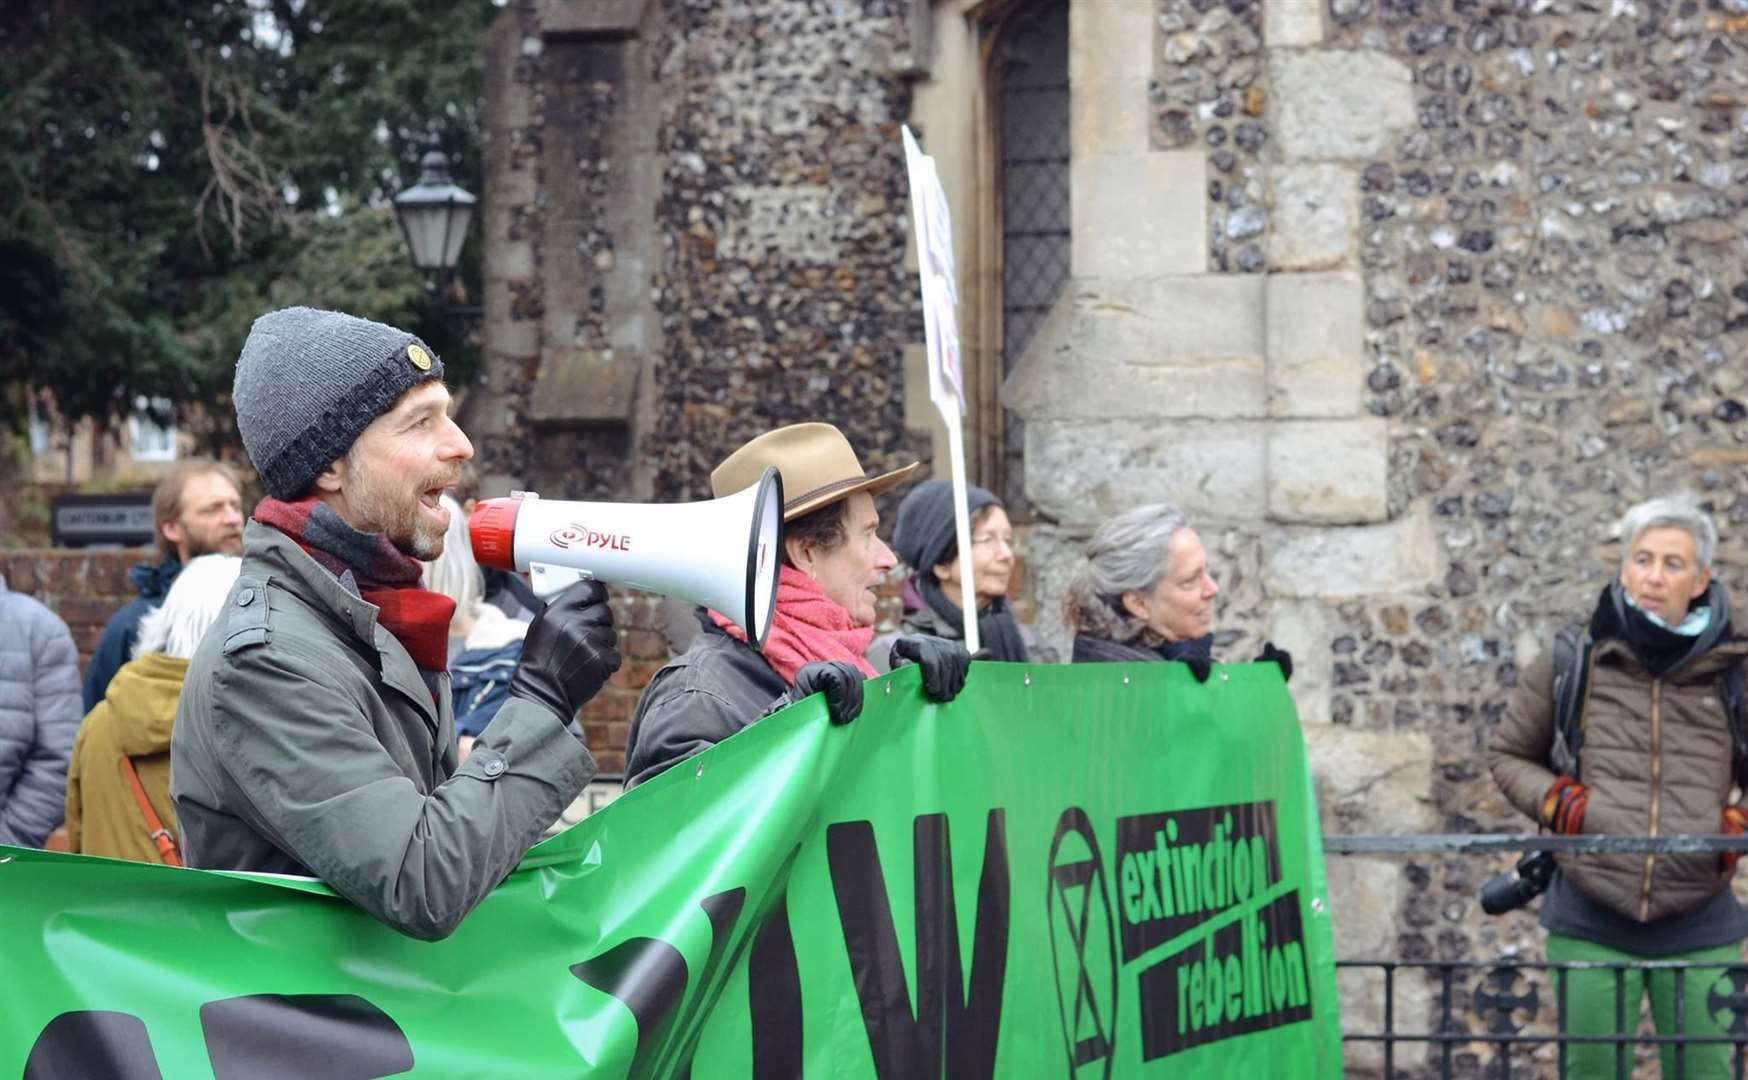 A previous Extinction Rebellion protest. Picture: Extinction Rebellion Canterbury